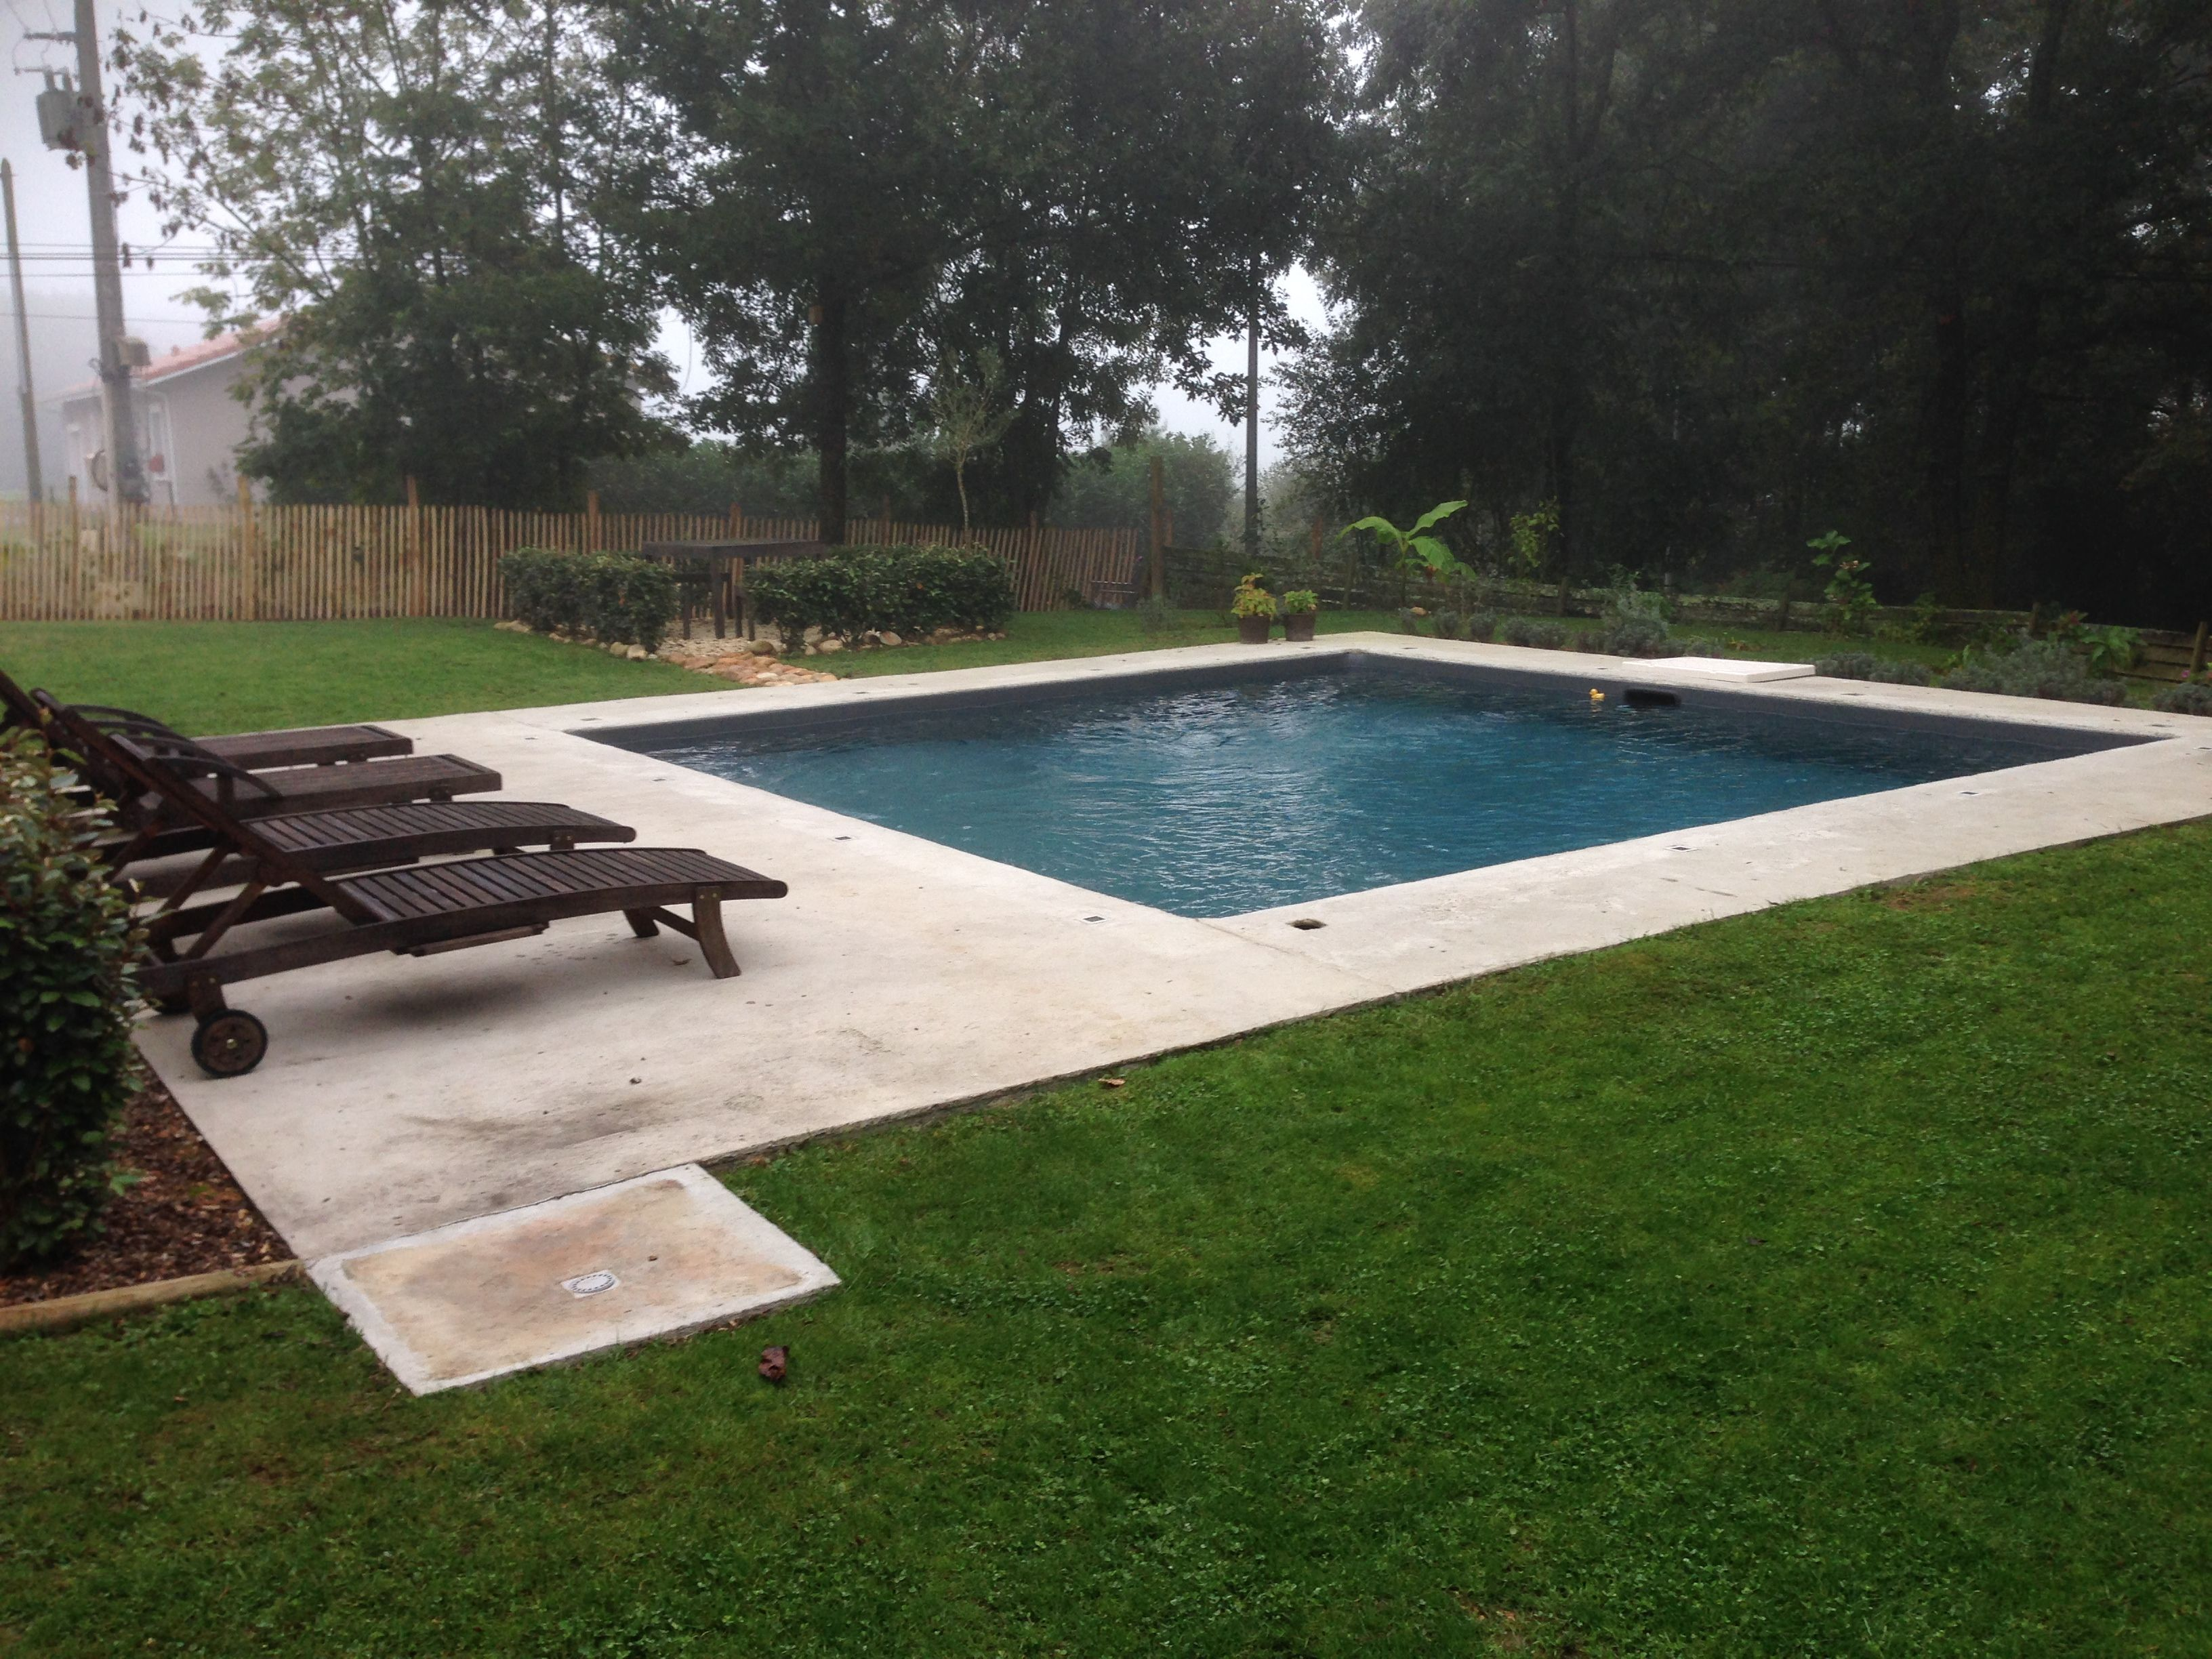 Piscine carr liner couleur gris anthracite terrasse en for Piscine liner